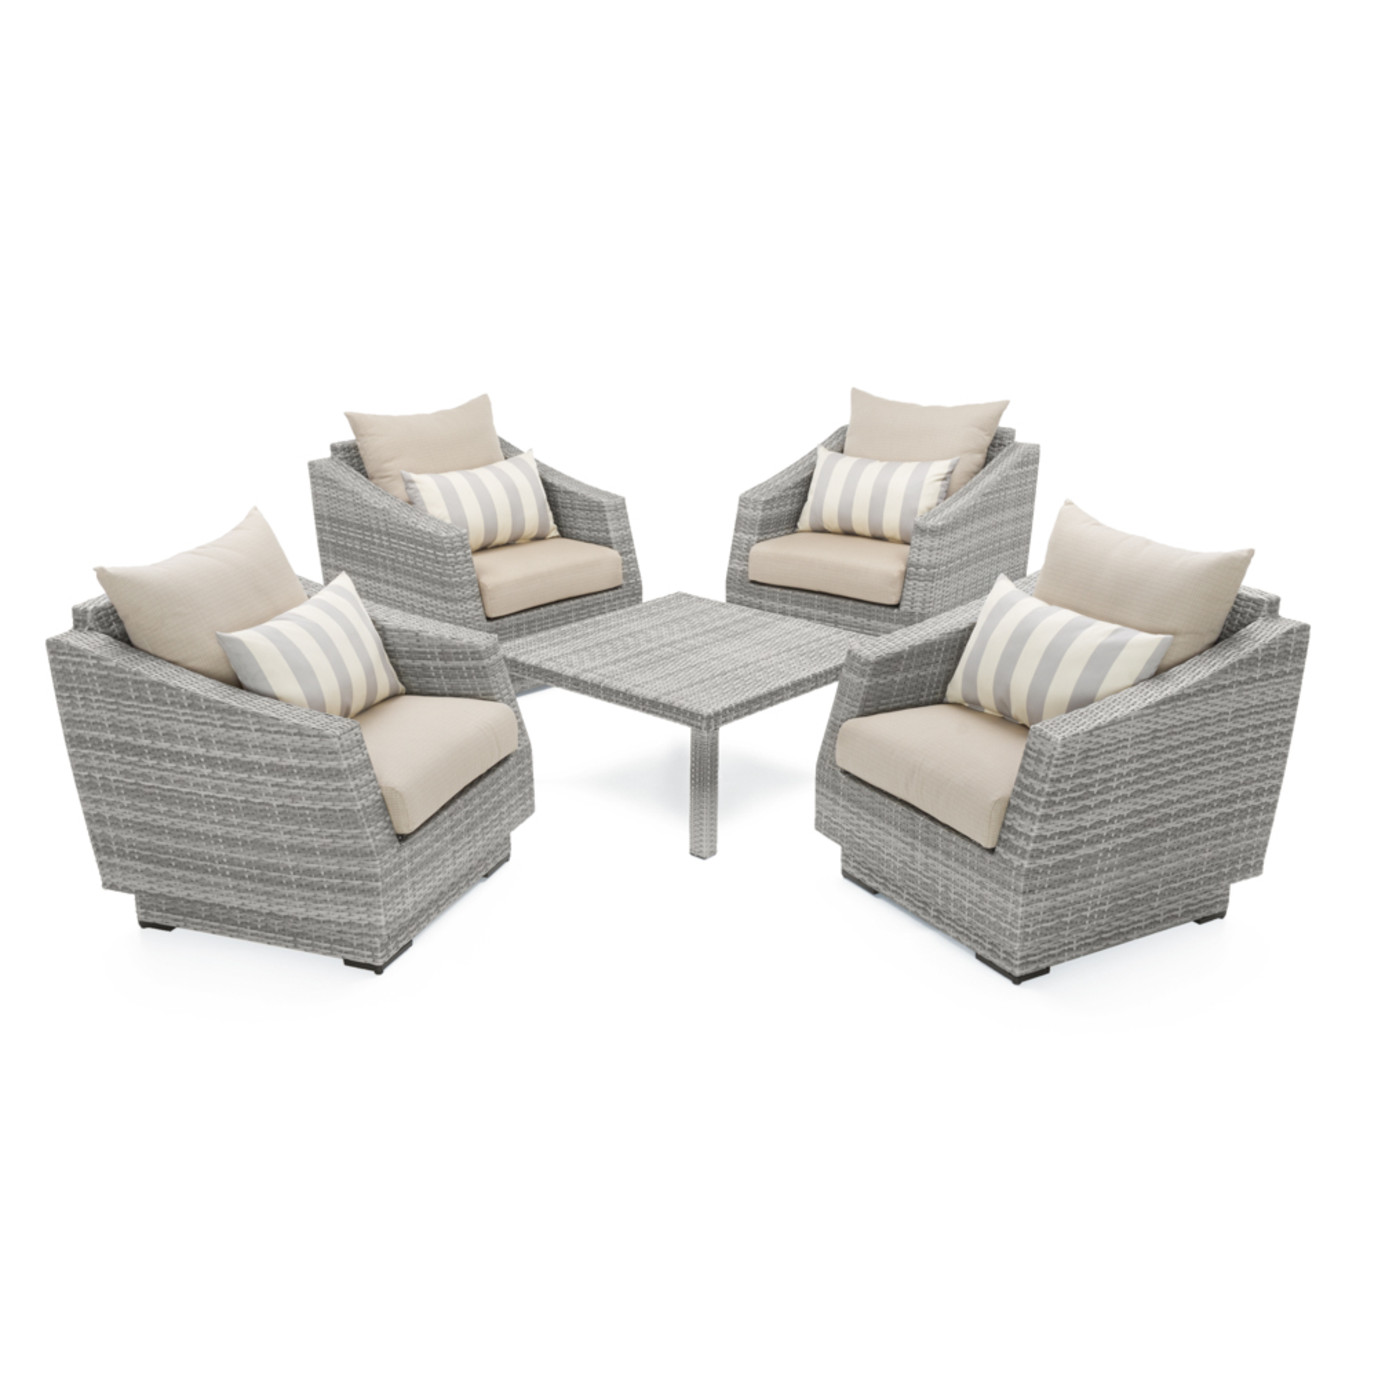 Cannes™ 5 Piece Club & Table Chat Set - Slate Gray